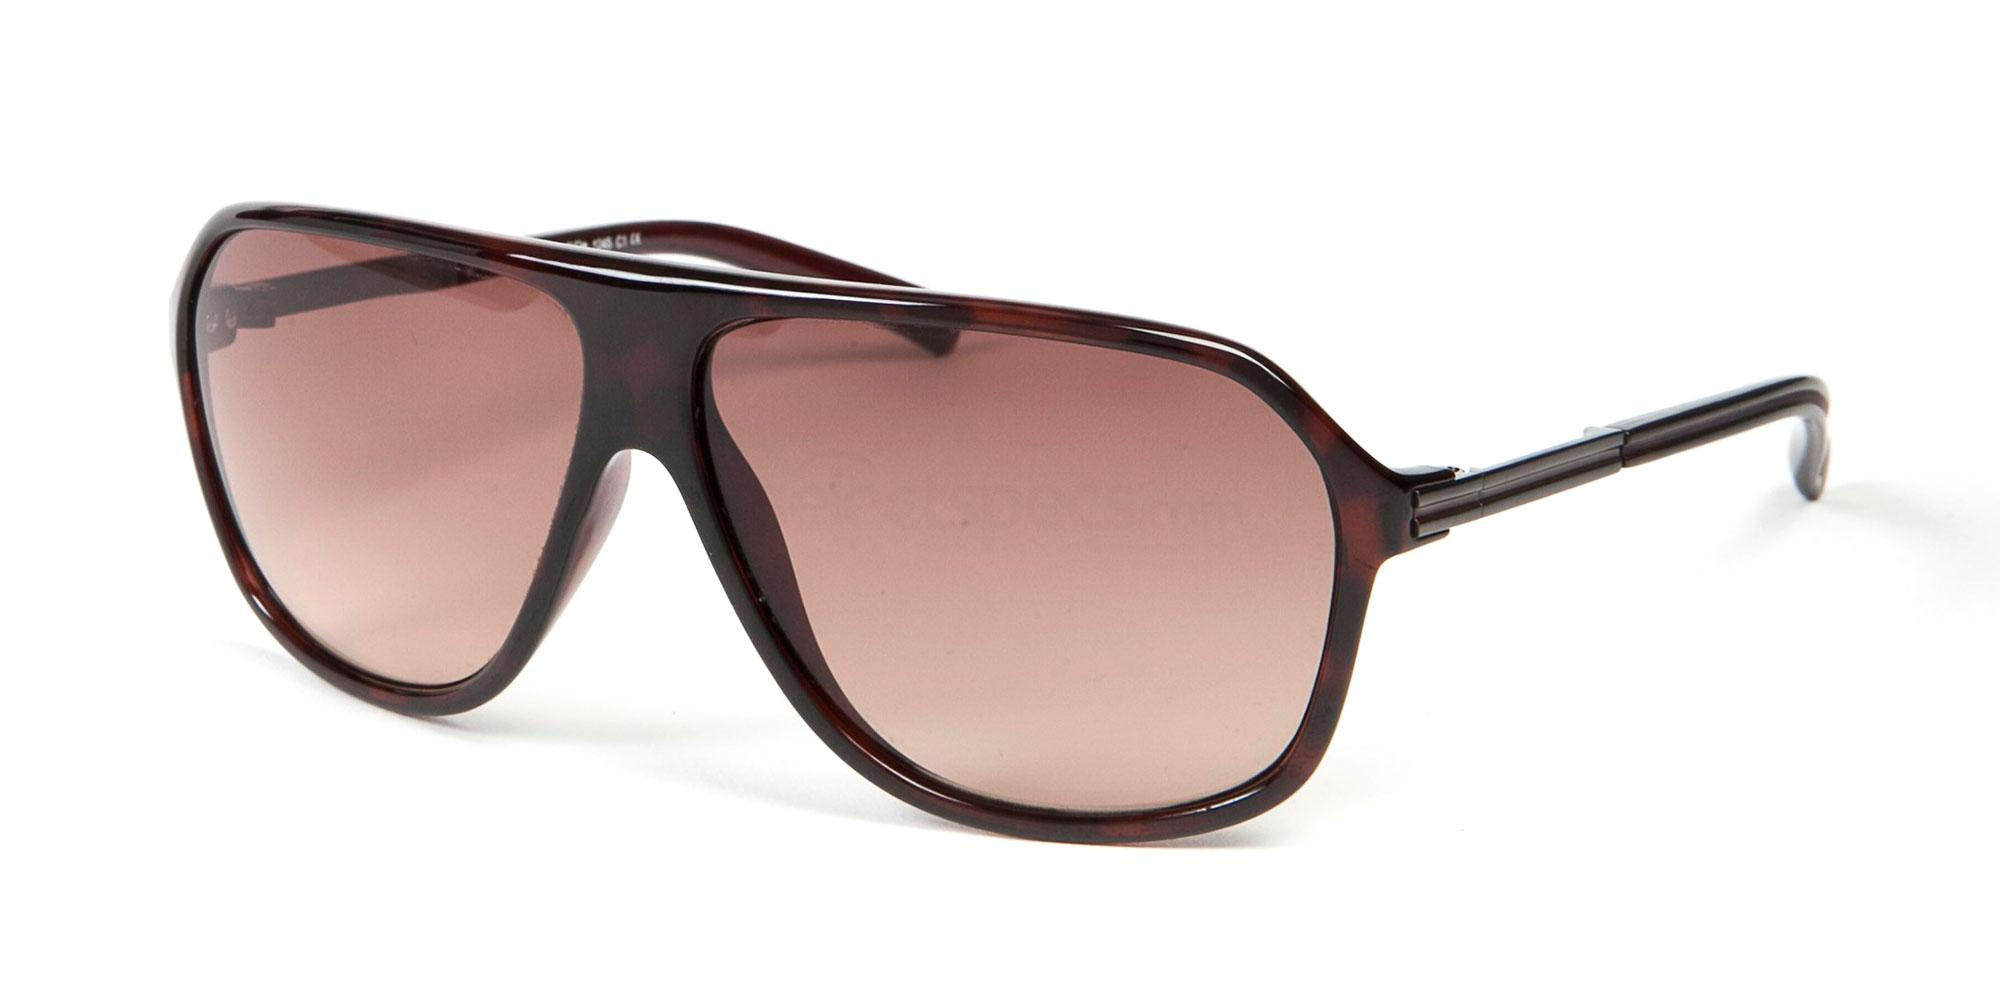 C1 124S Sunglasses, Oxford